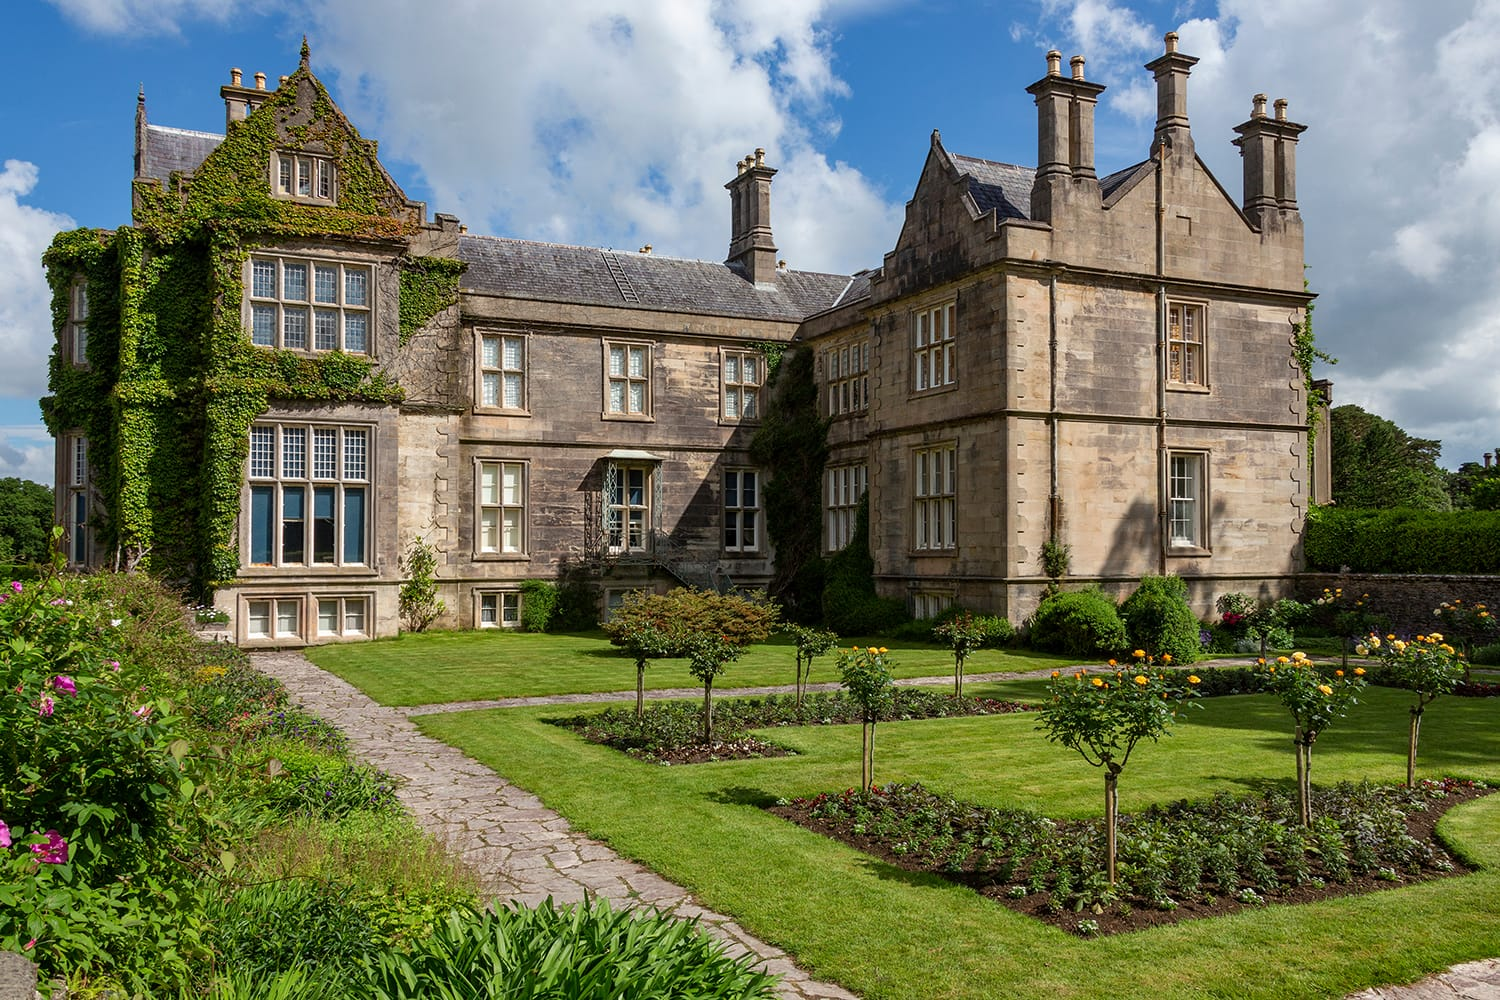 Muckross House - located on Muckross Peninsula between Muckross Lake and Lough Leane, two of the lakes of Killarney, 6km from Killarney in County Kerry, Ireland.